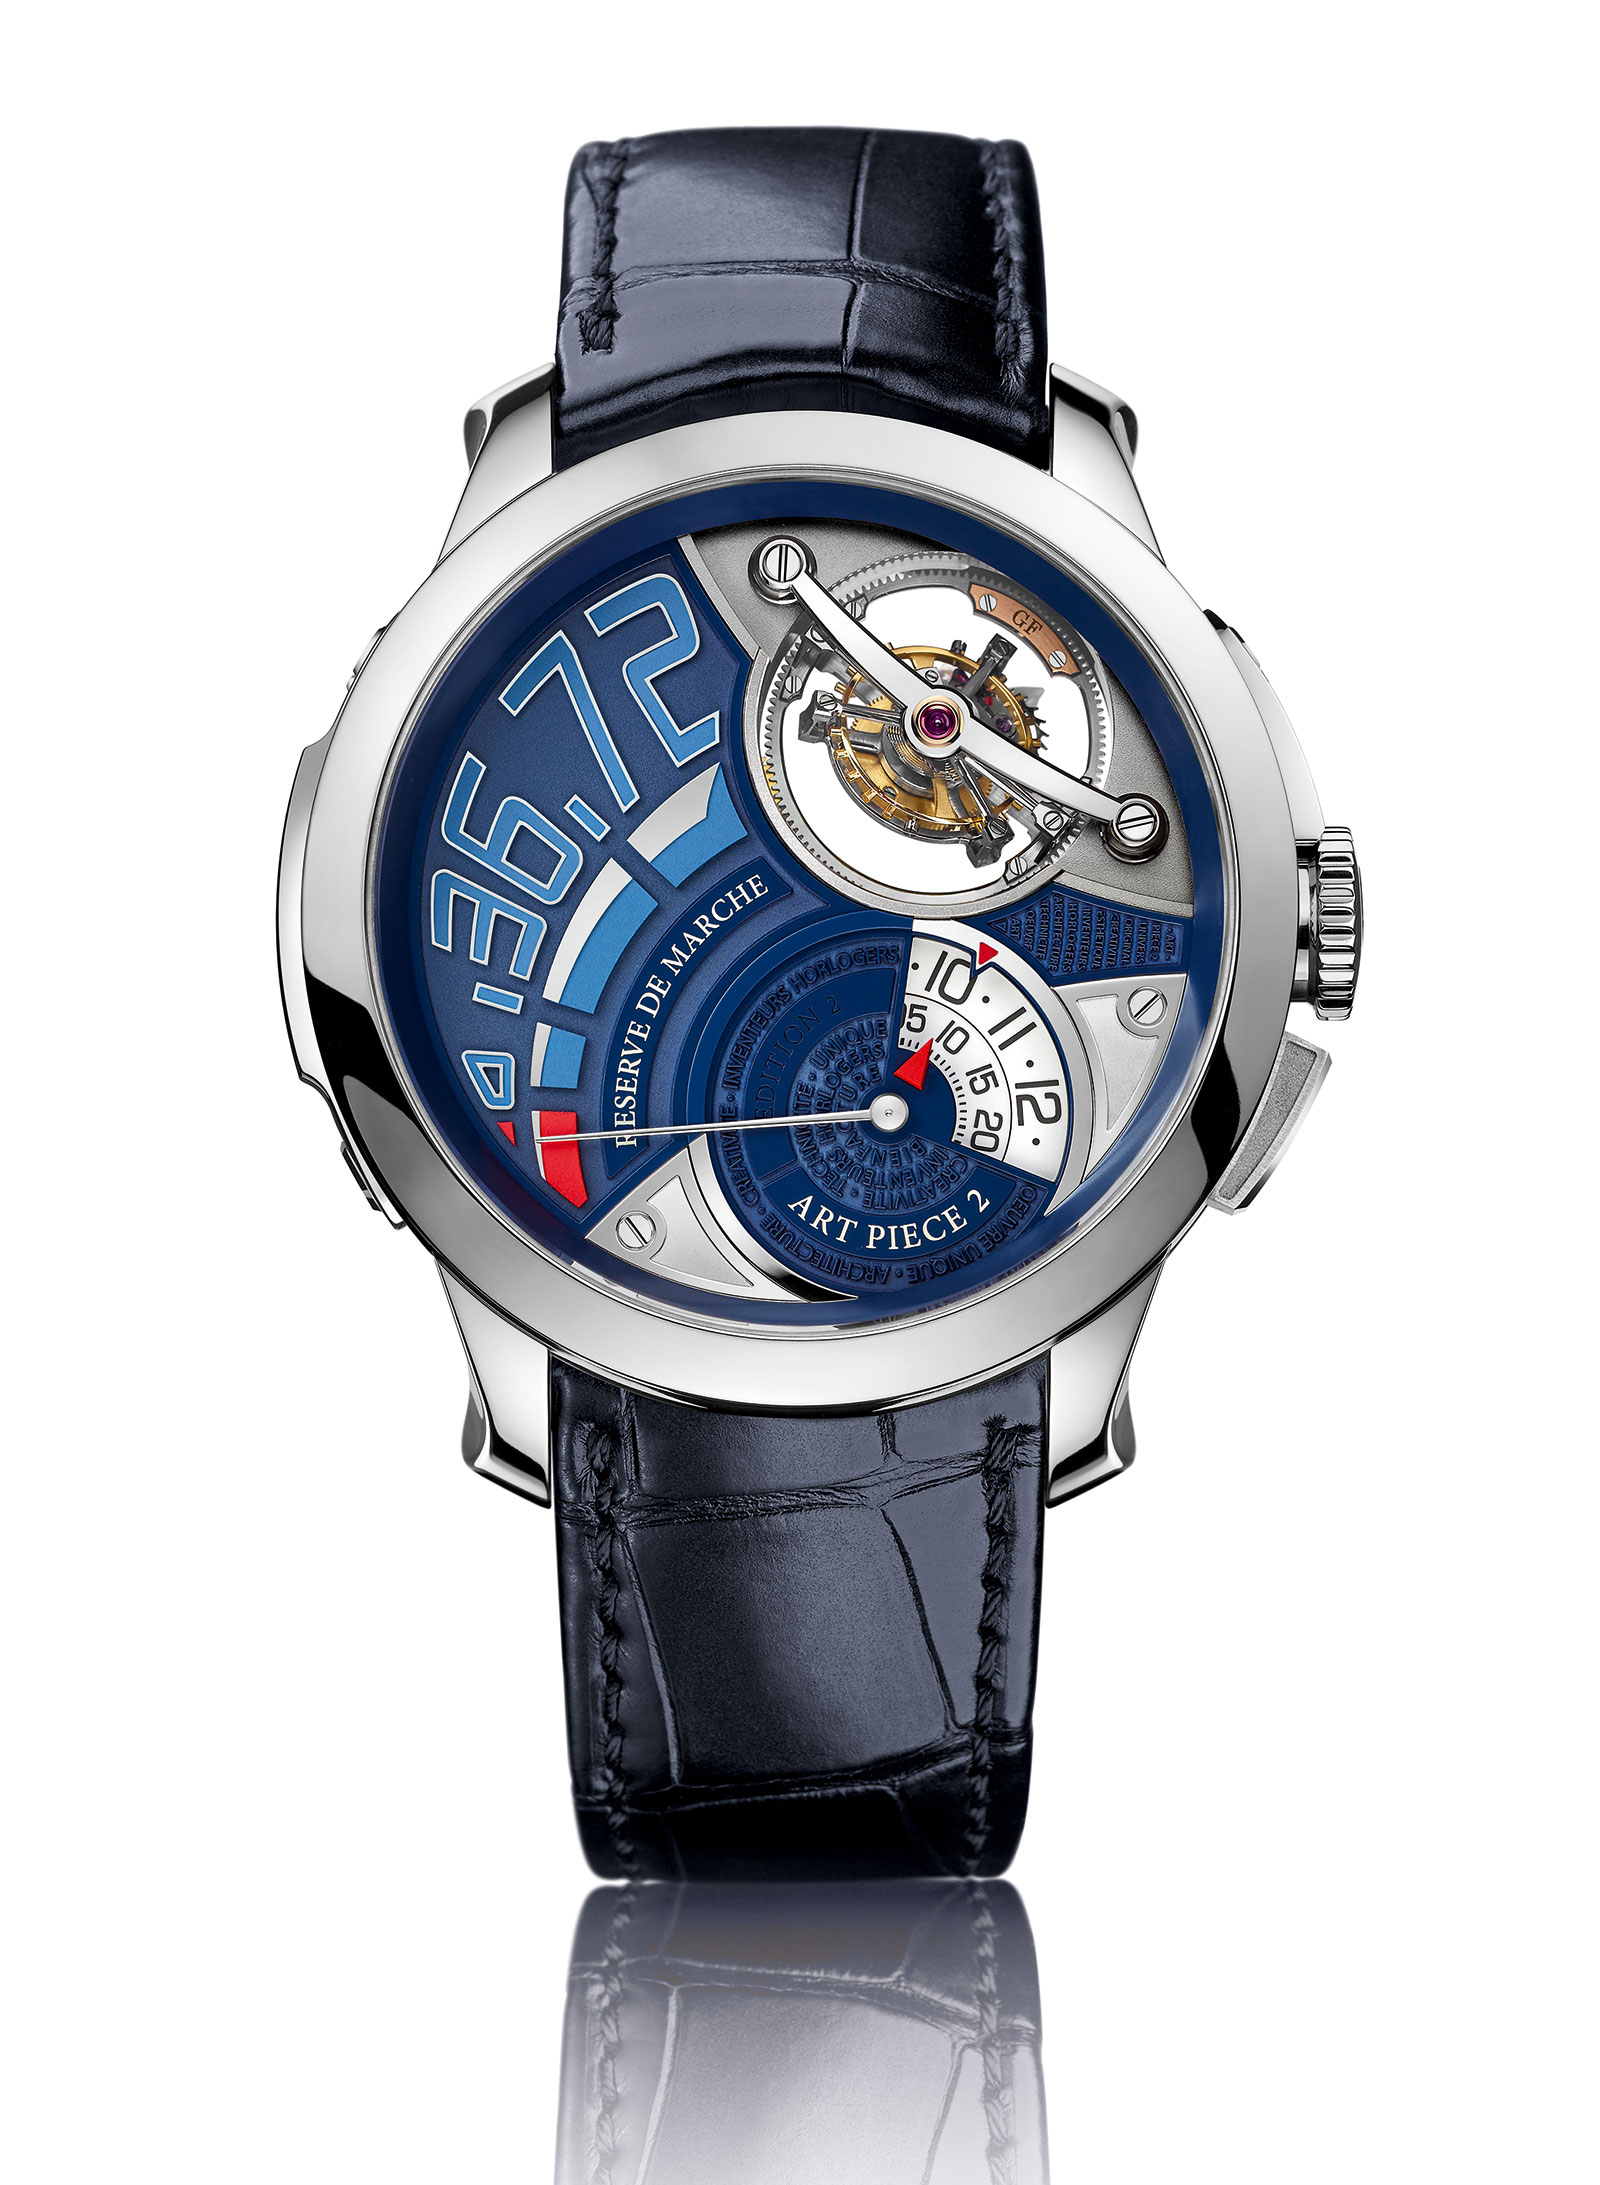 Greubel Forsey Art Piece 2 Edition 2-4